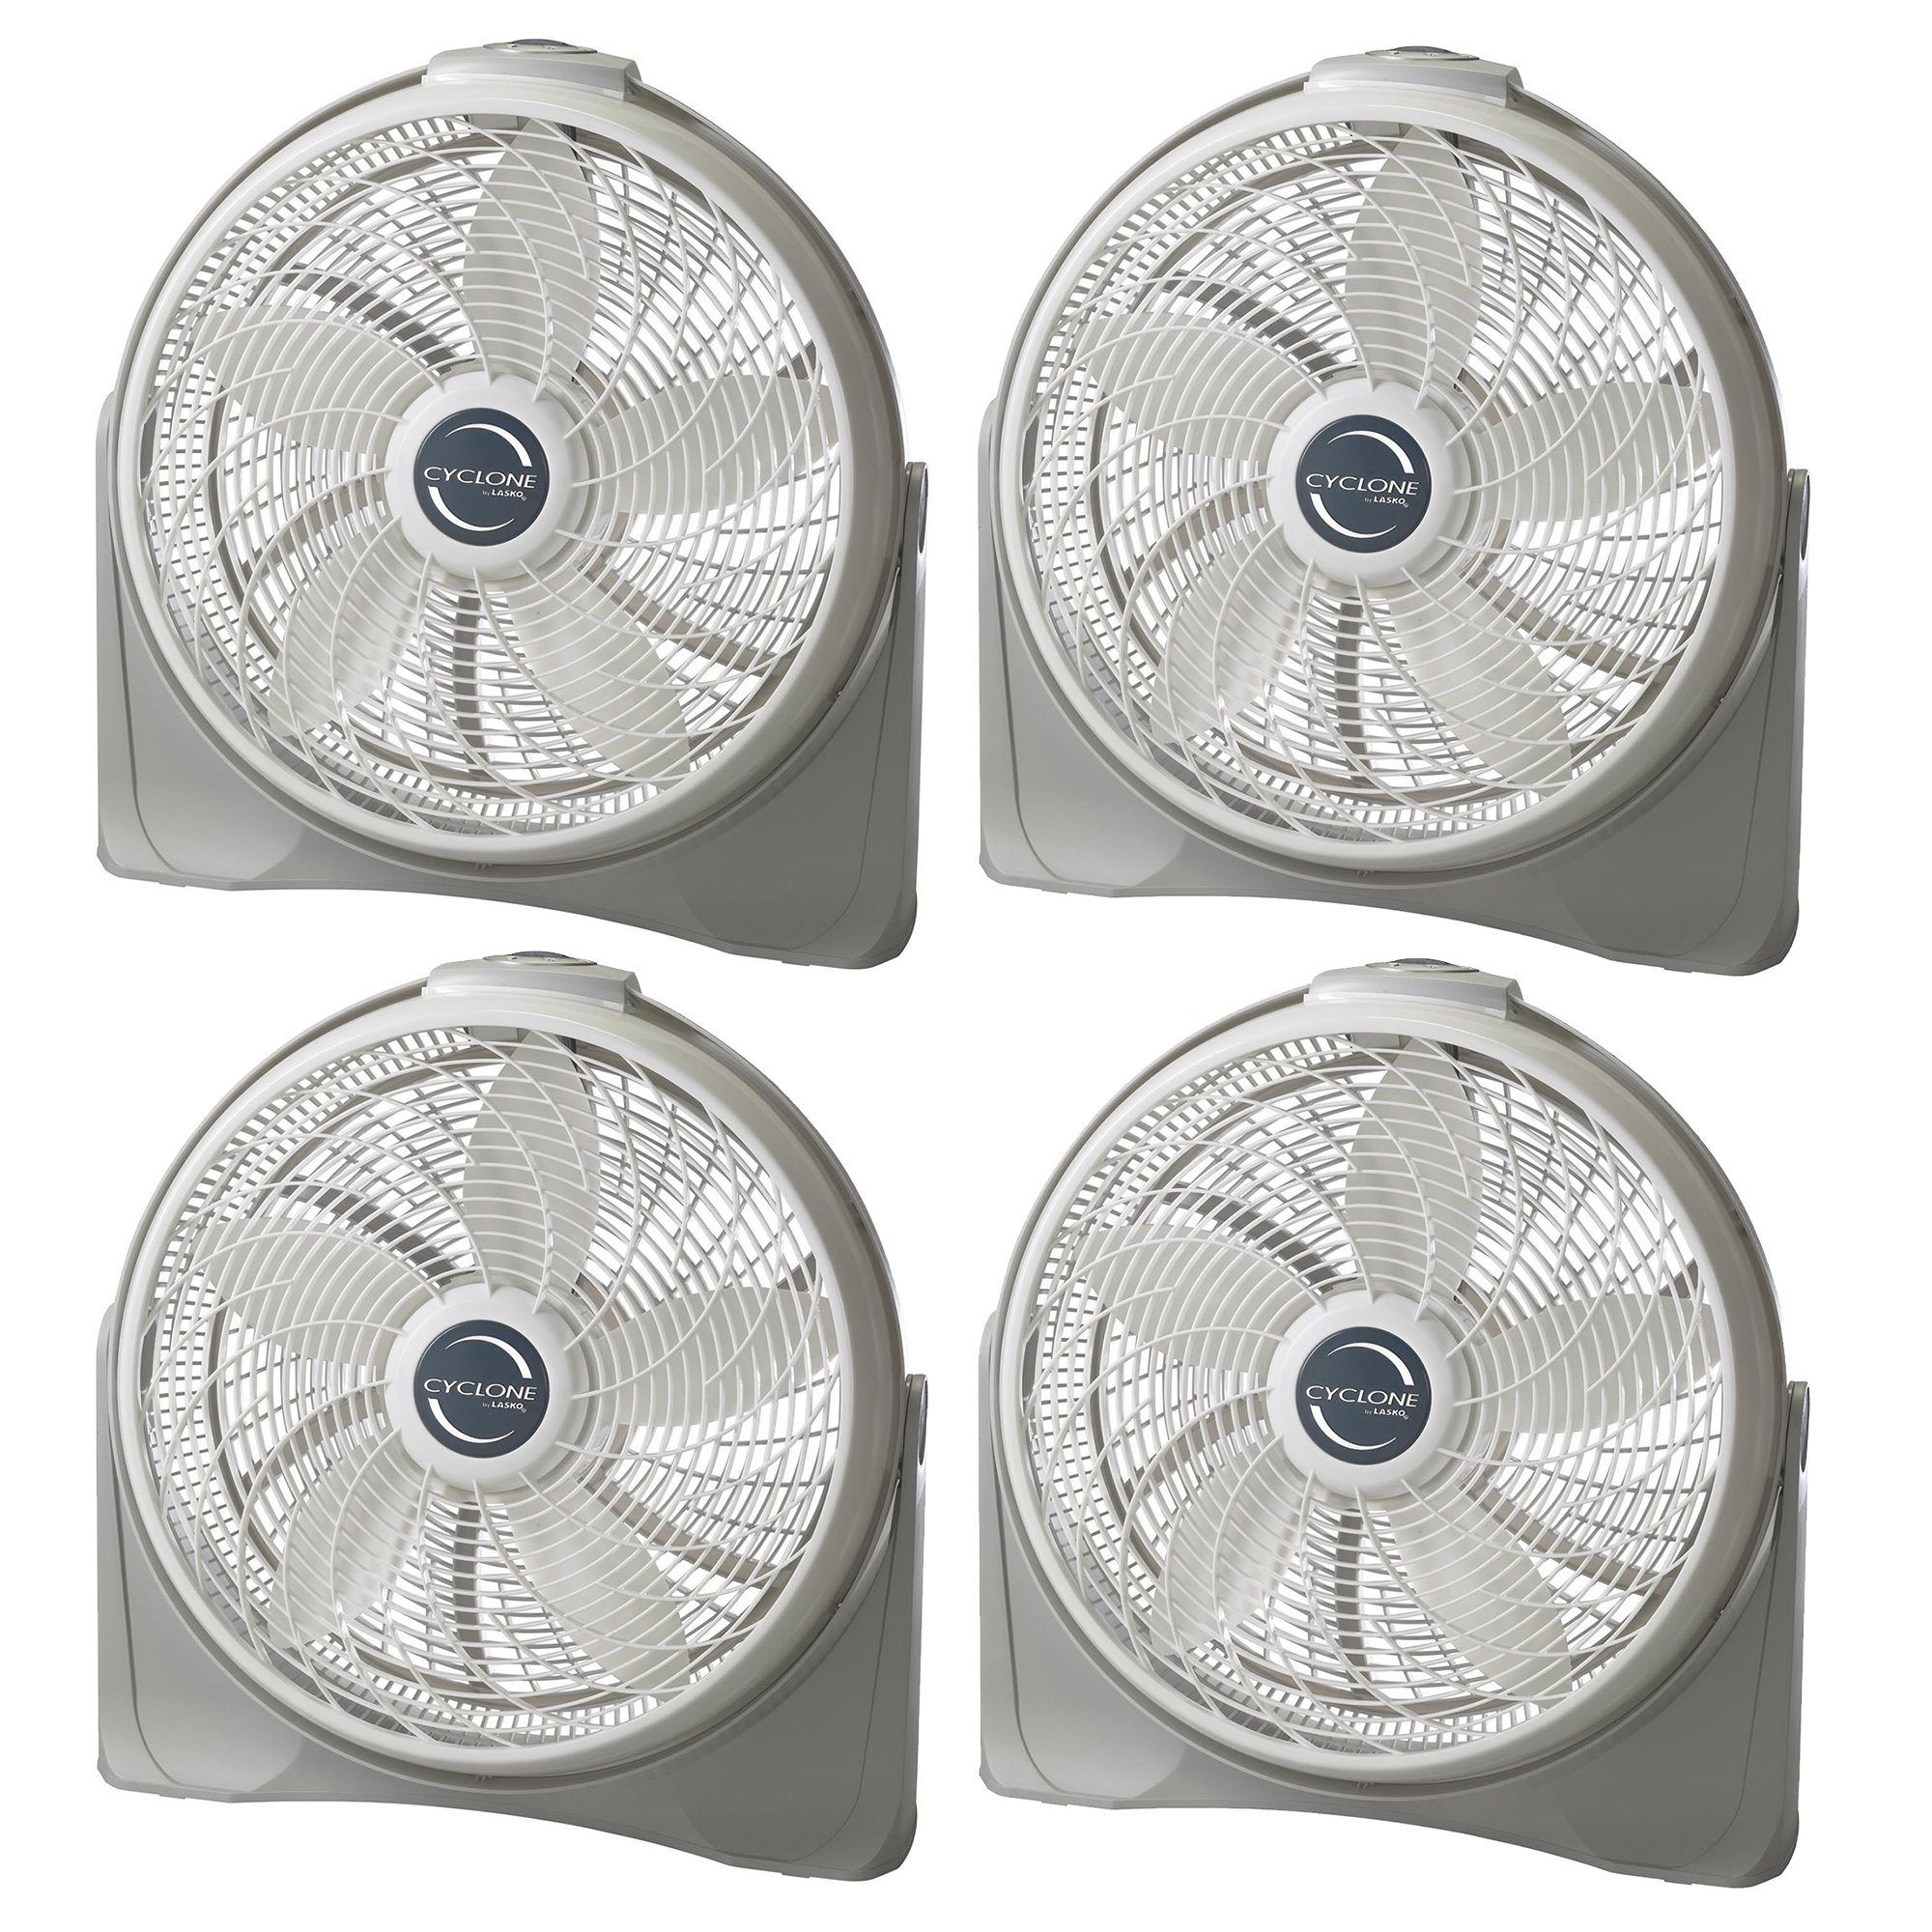 Lasko 20 Inch Cyclone Floor or Wall Mounted Pivoting Fan, White (4 Pack)